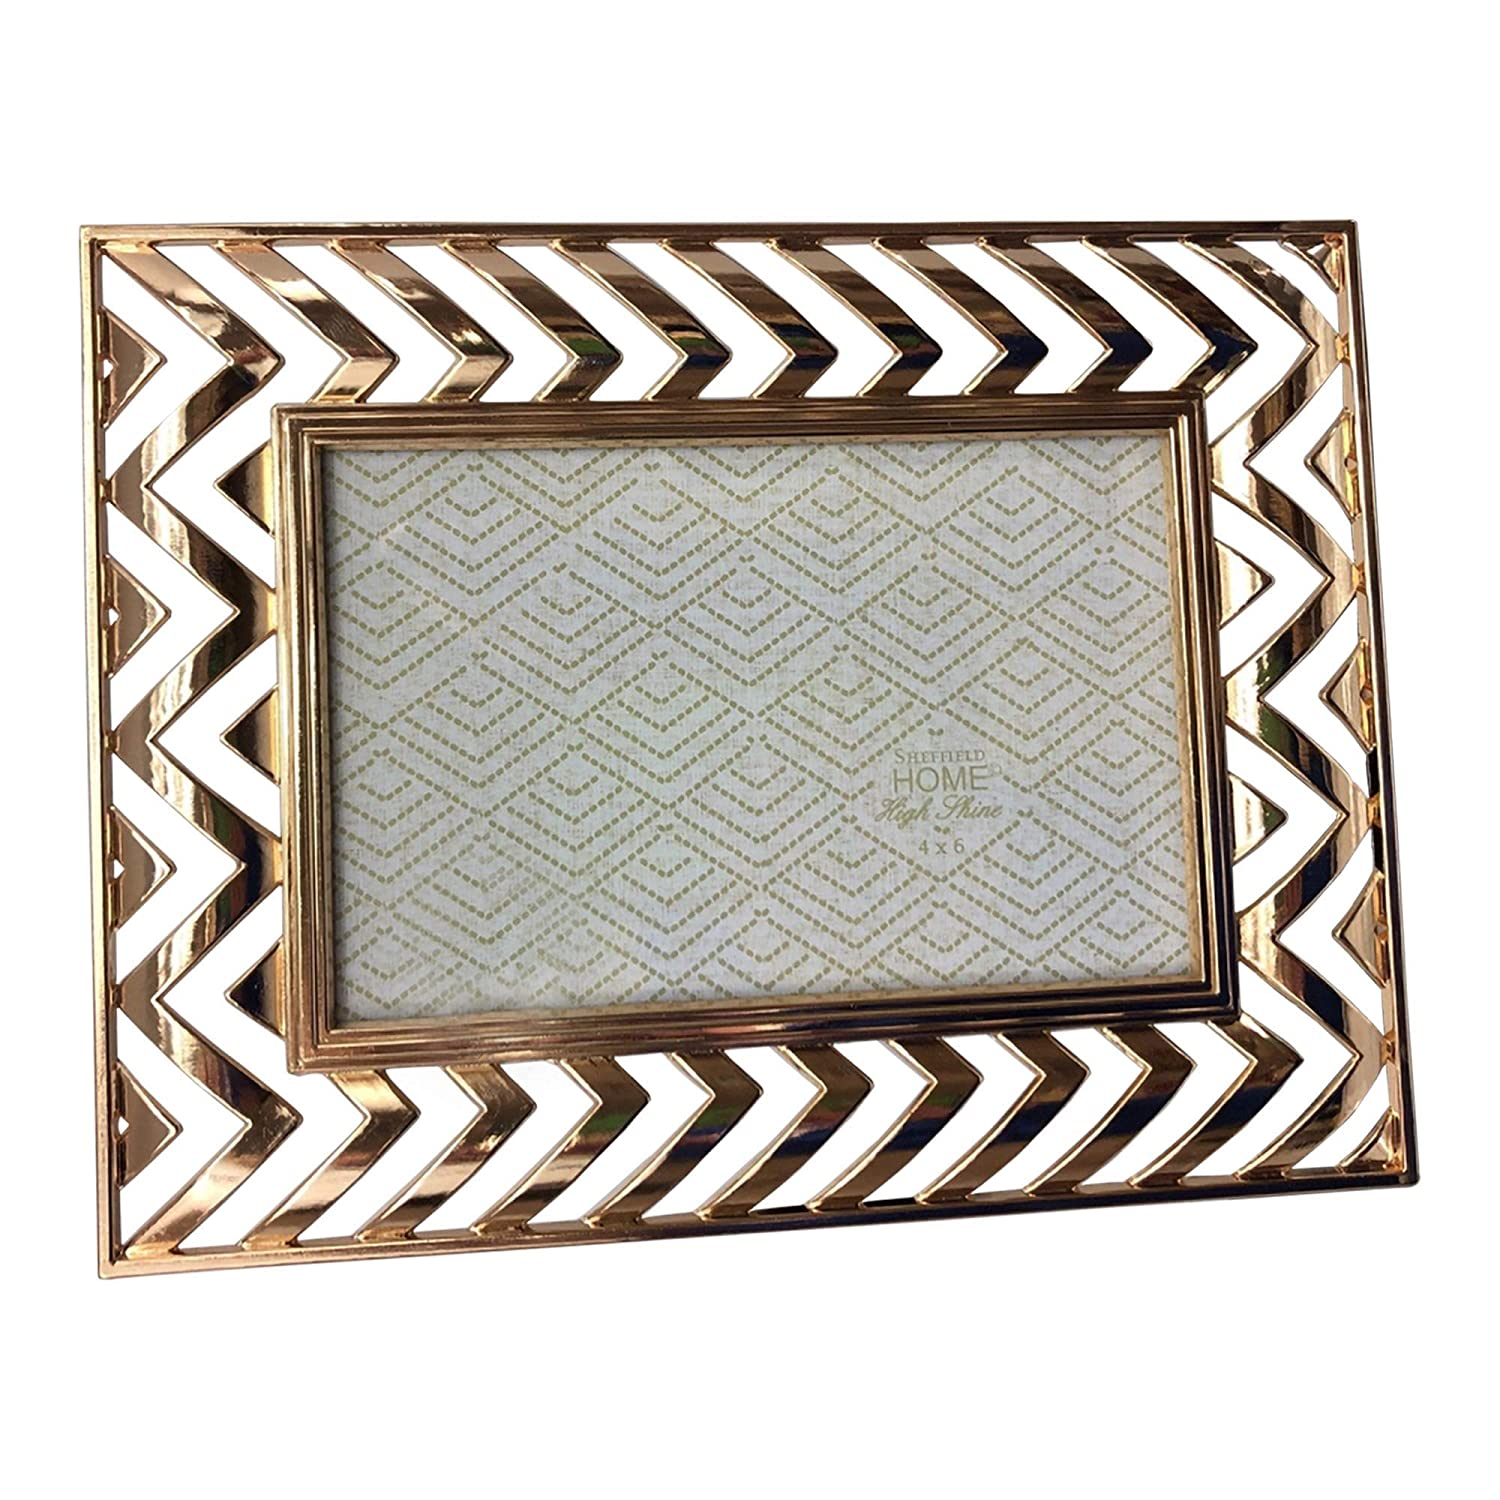 Sheffield Home Photo Frame Picture 4 by 6 Gold Table Top Horizontal Vertical Chevron Zig Zag Open Work Shiny Metal